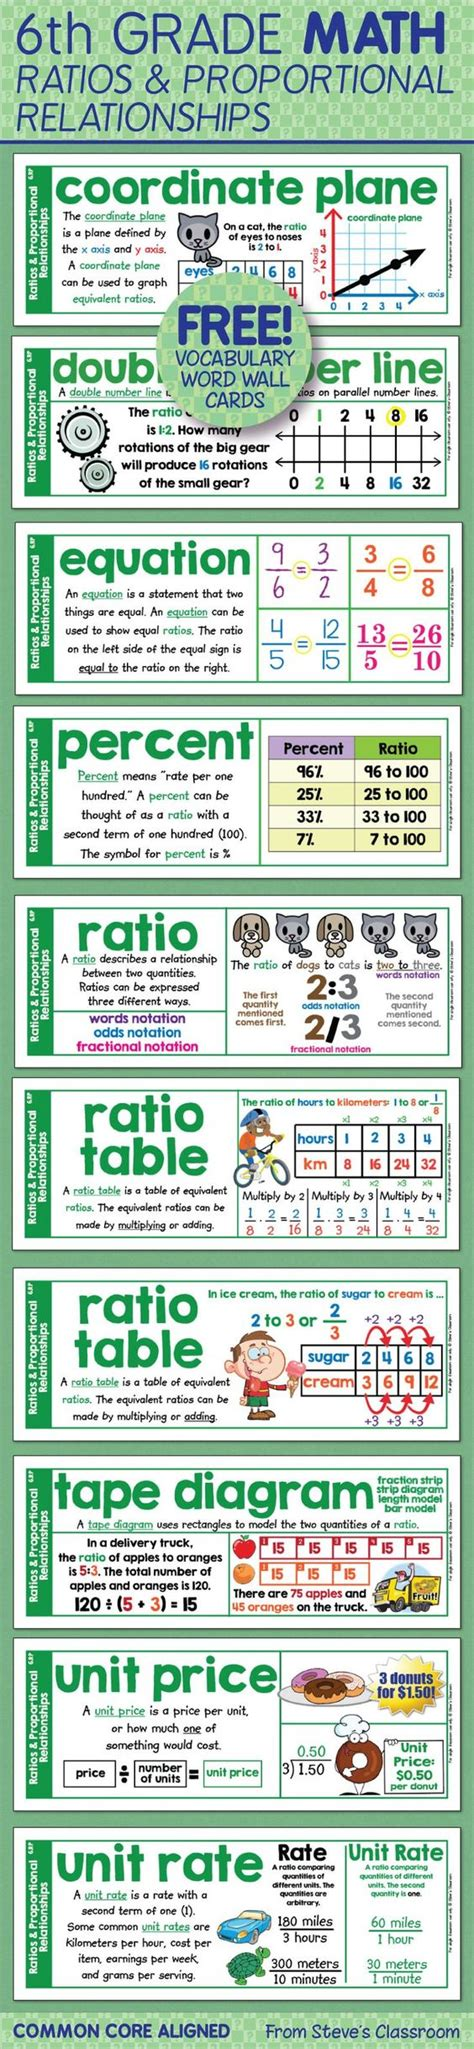 wall cards free word wall cards for sixth grade math ratios and